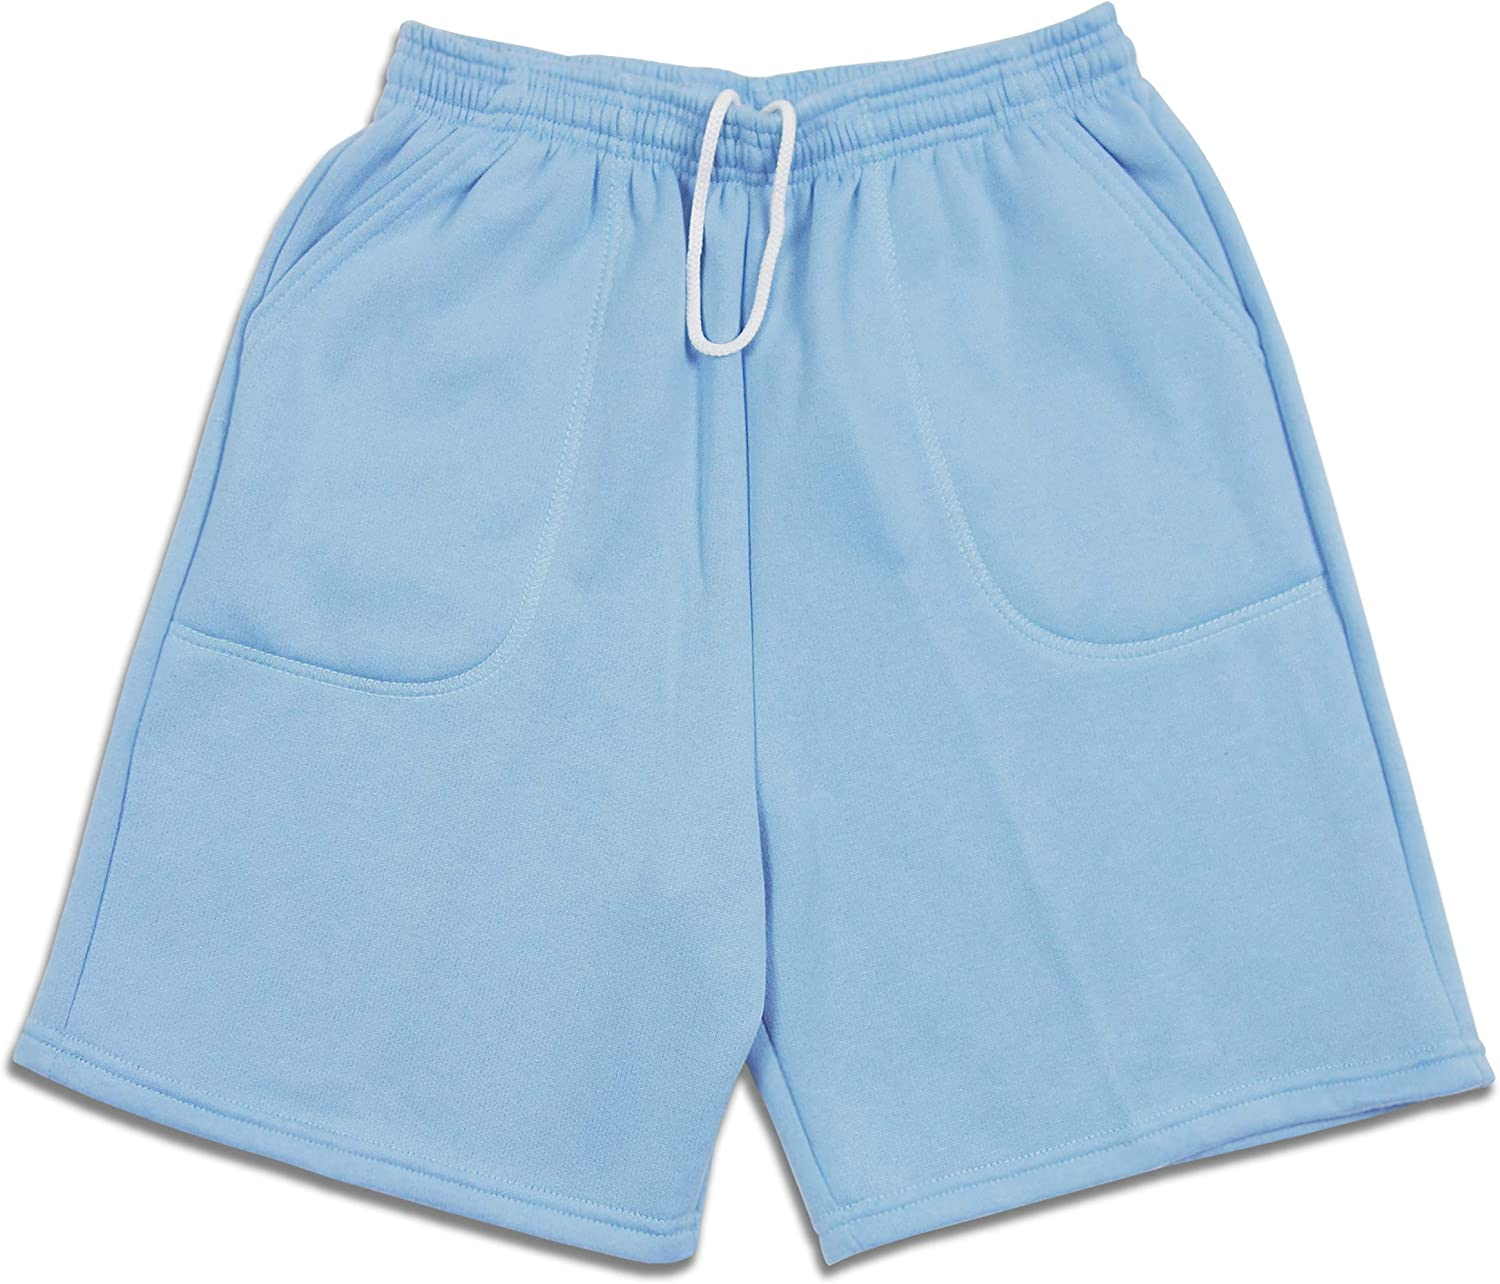 LA Speedy Men's Limited price Casual Brushed Drawst Shorts Fleece Pocket Sweat Easy-to-use